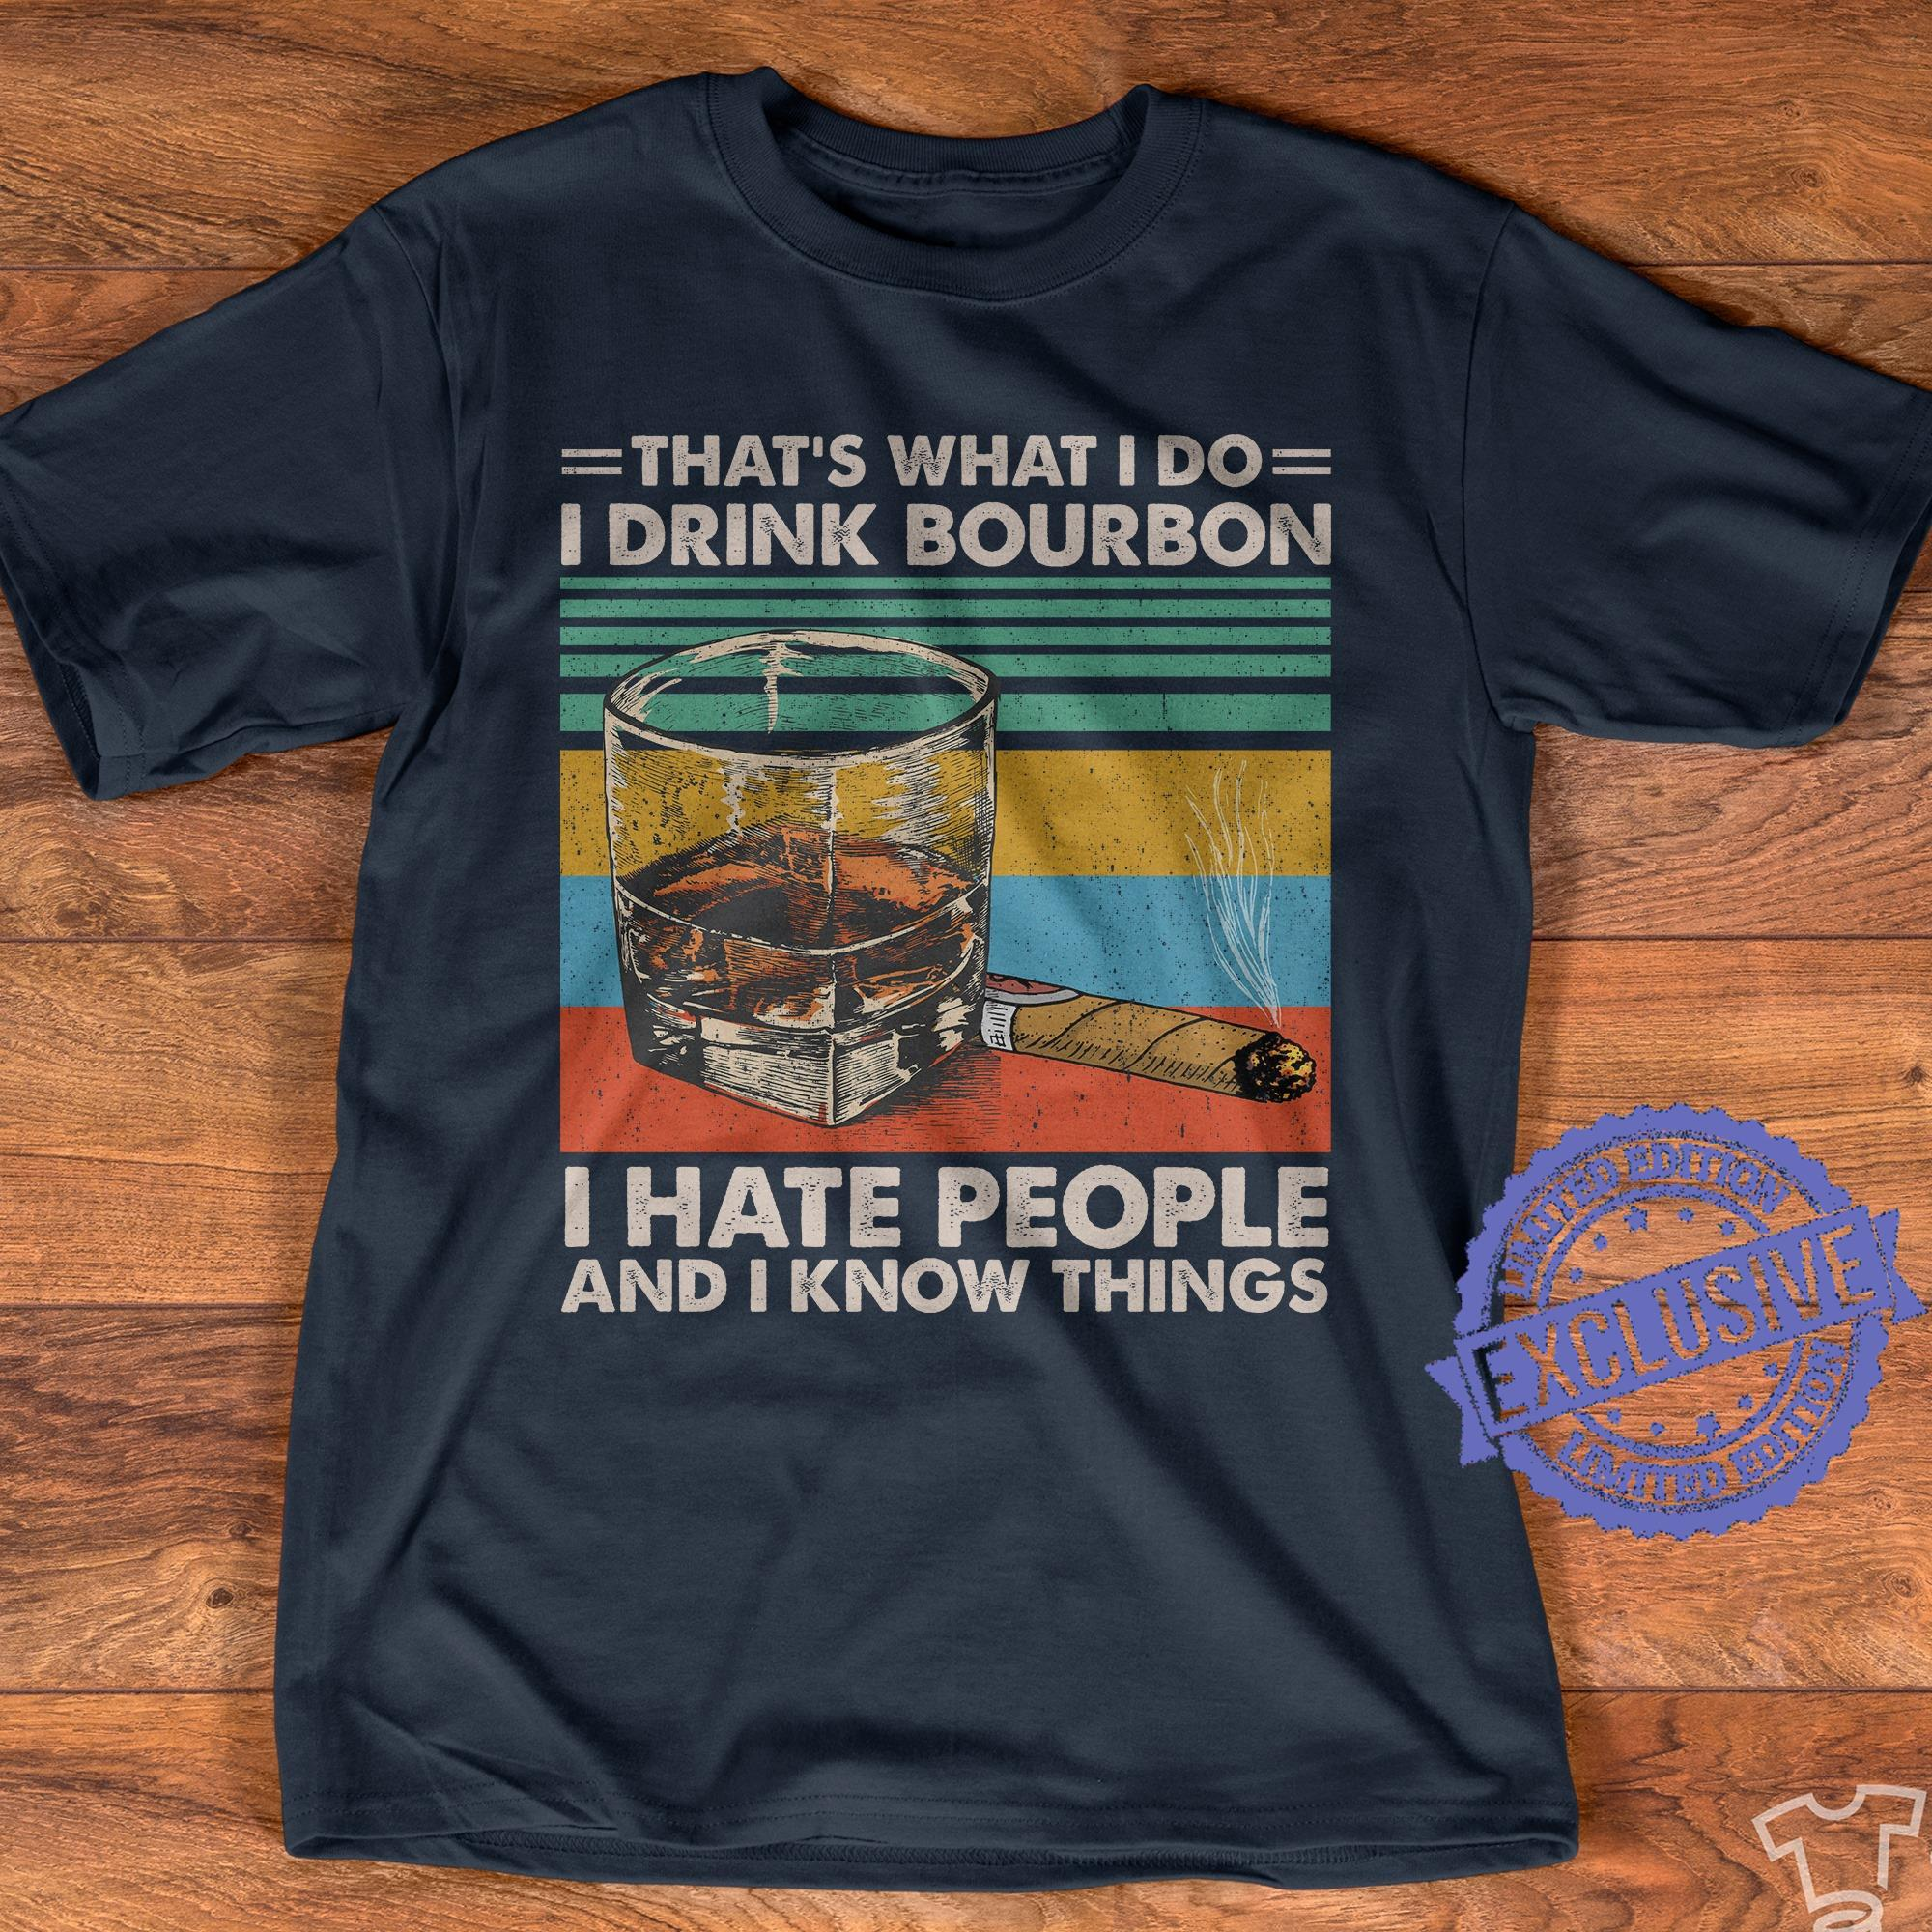 That's what i do i drink bourbon i hate people and i know things shirt